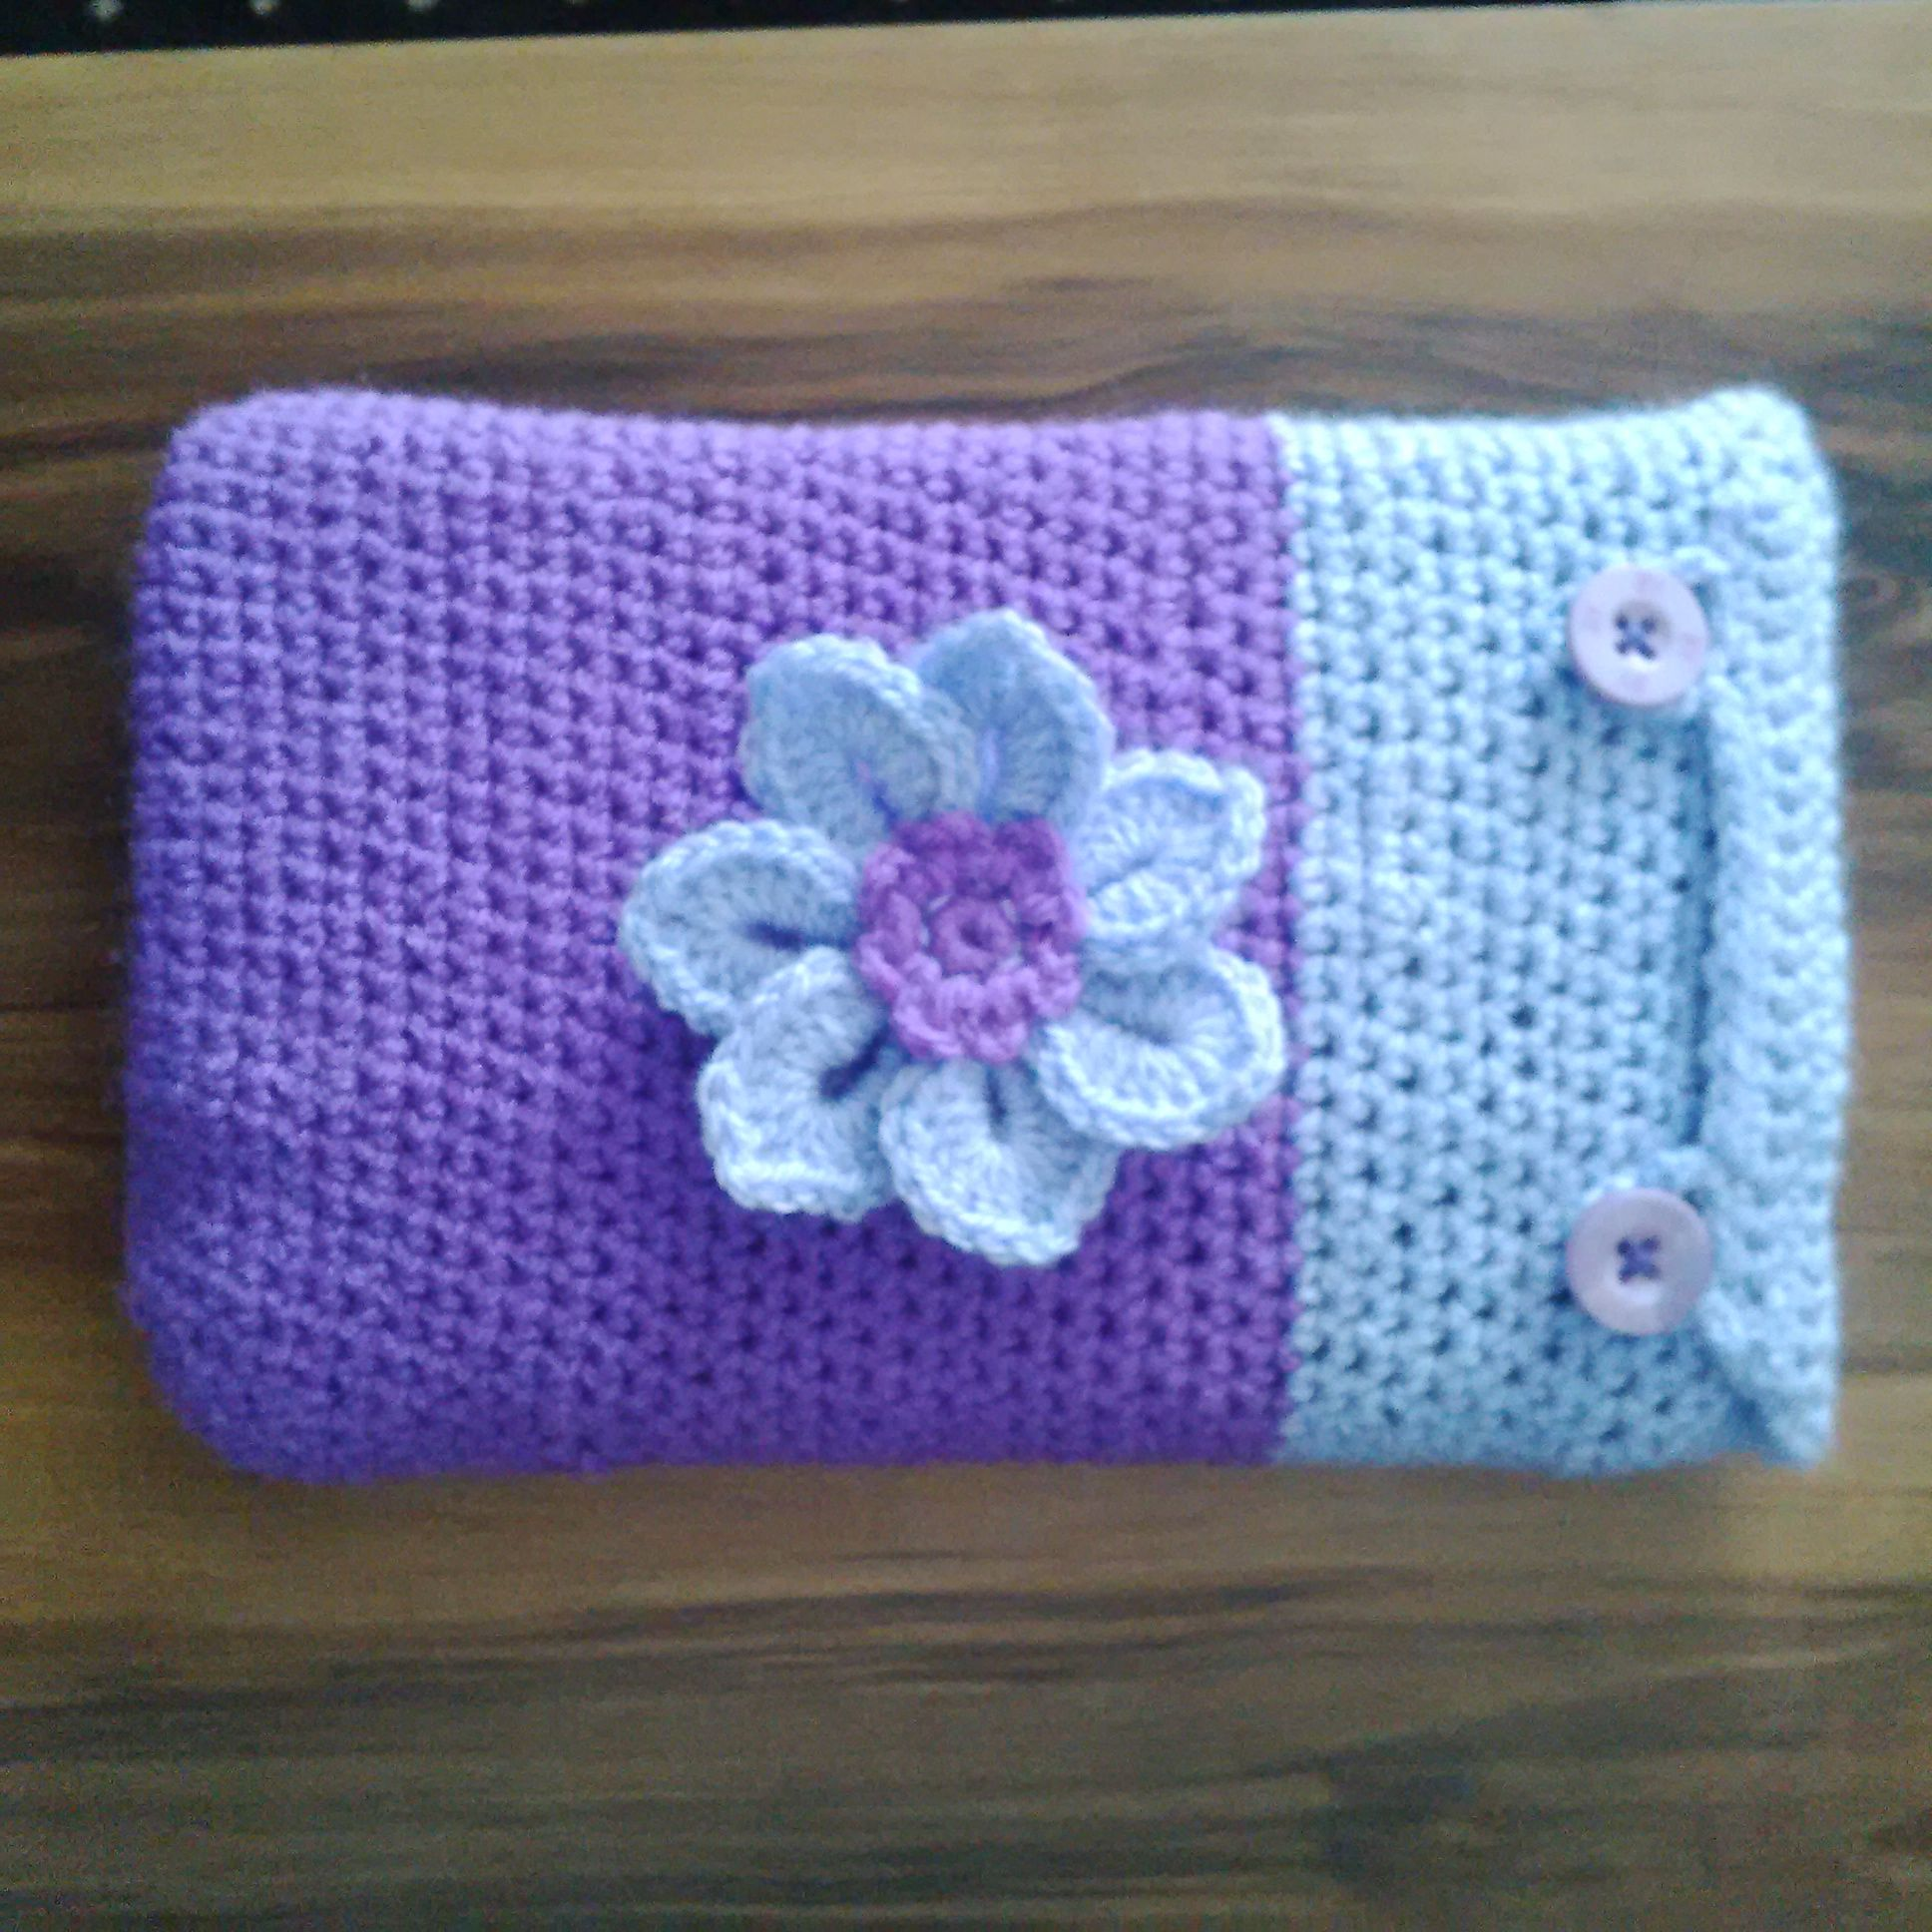 Another crochet tablet cover. | Thing to do | Pinterest